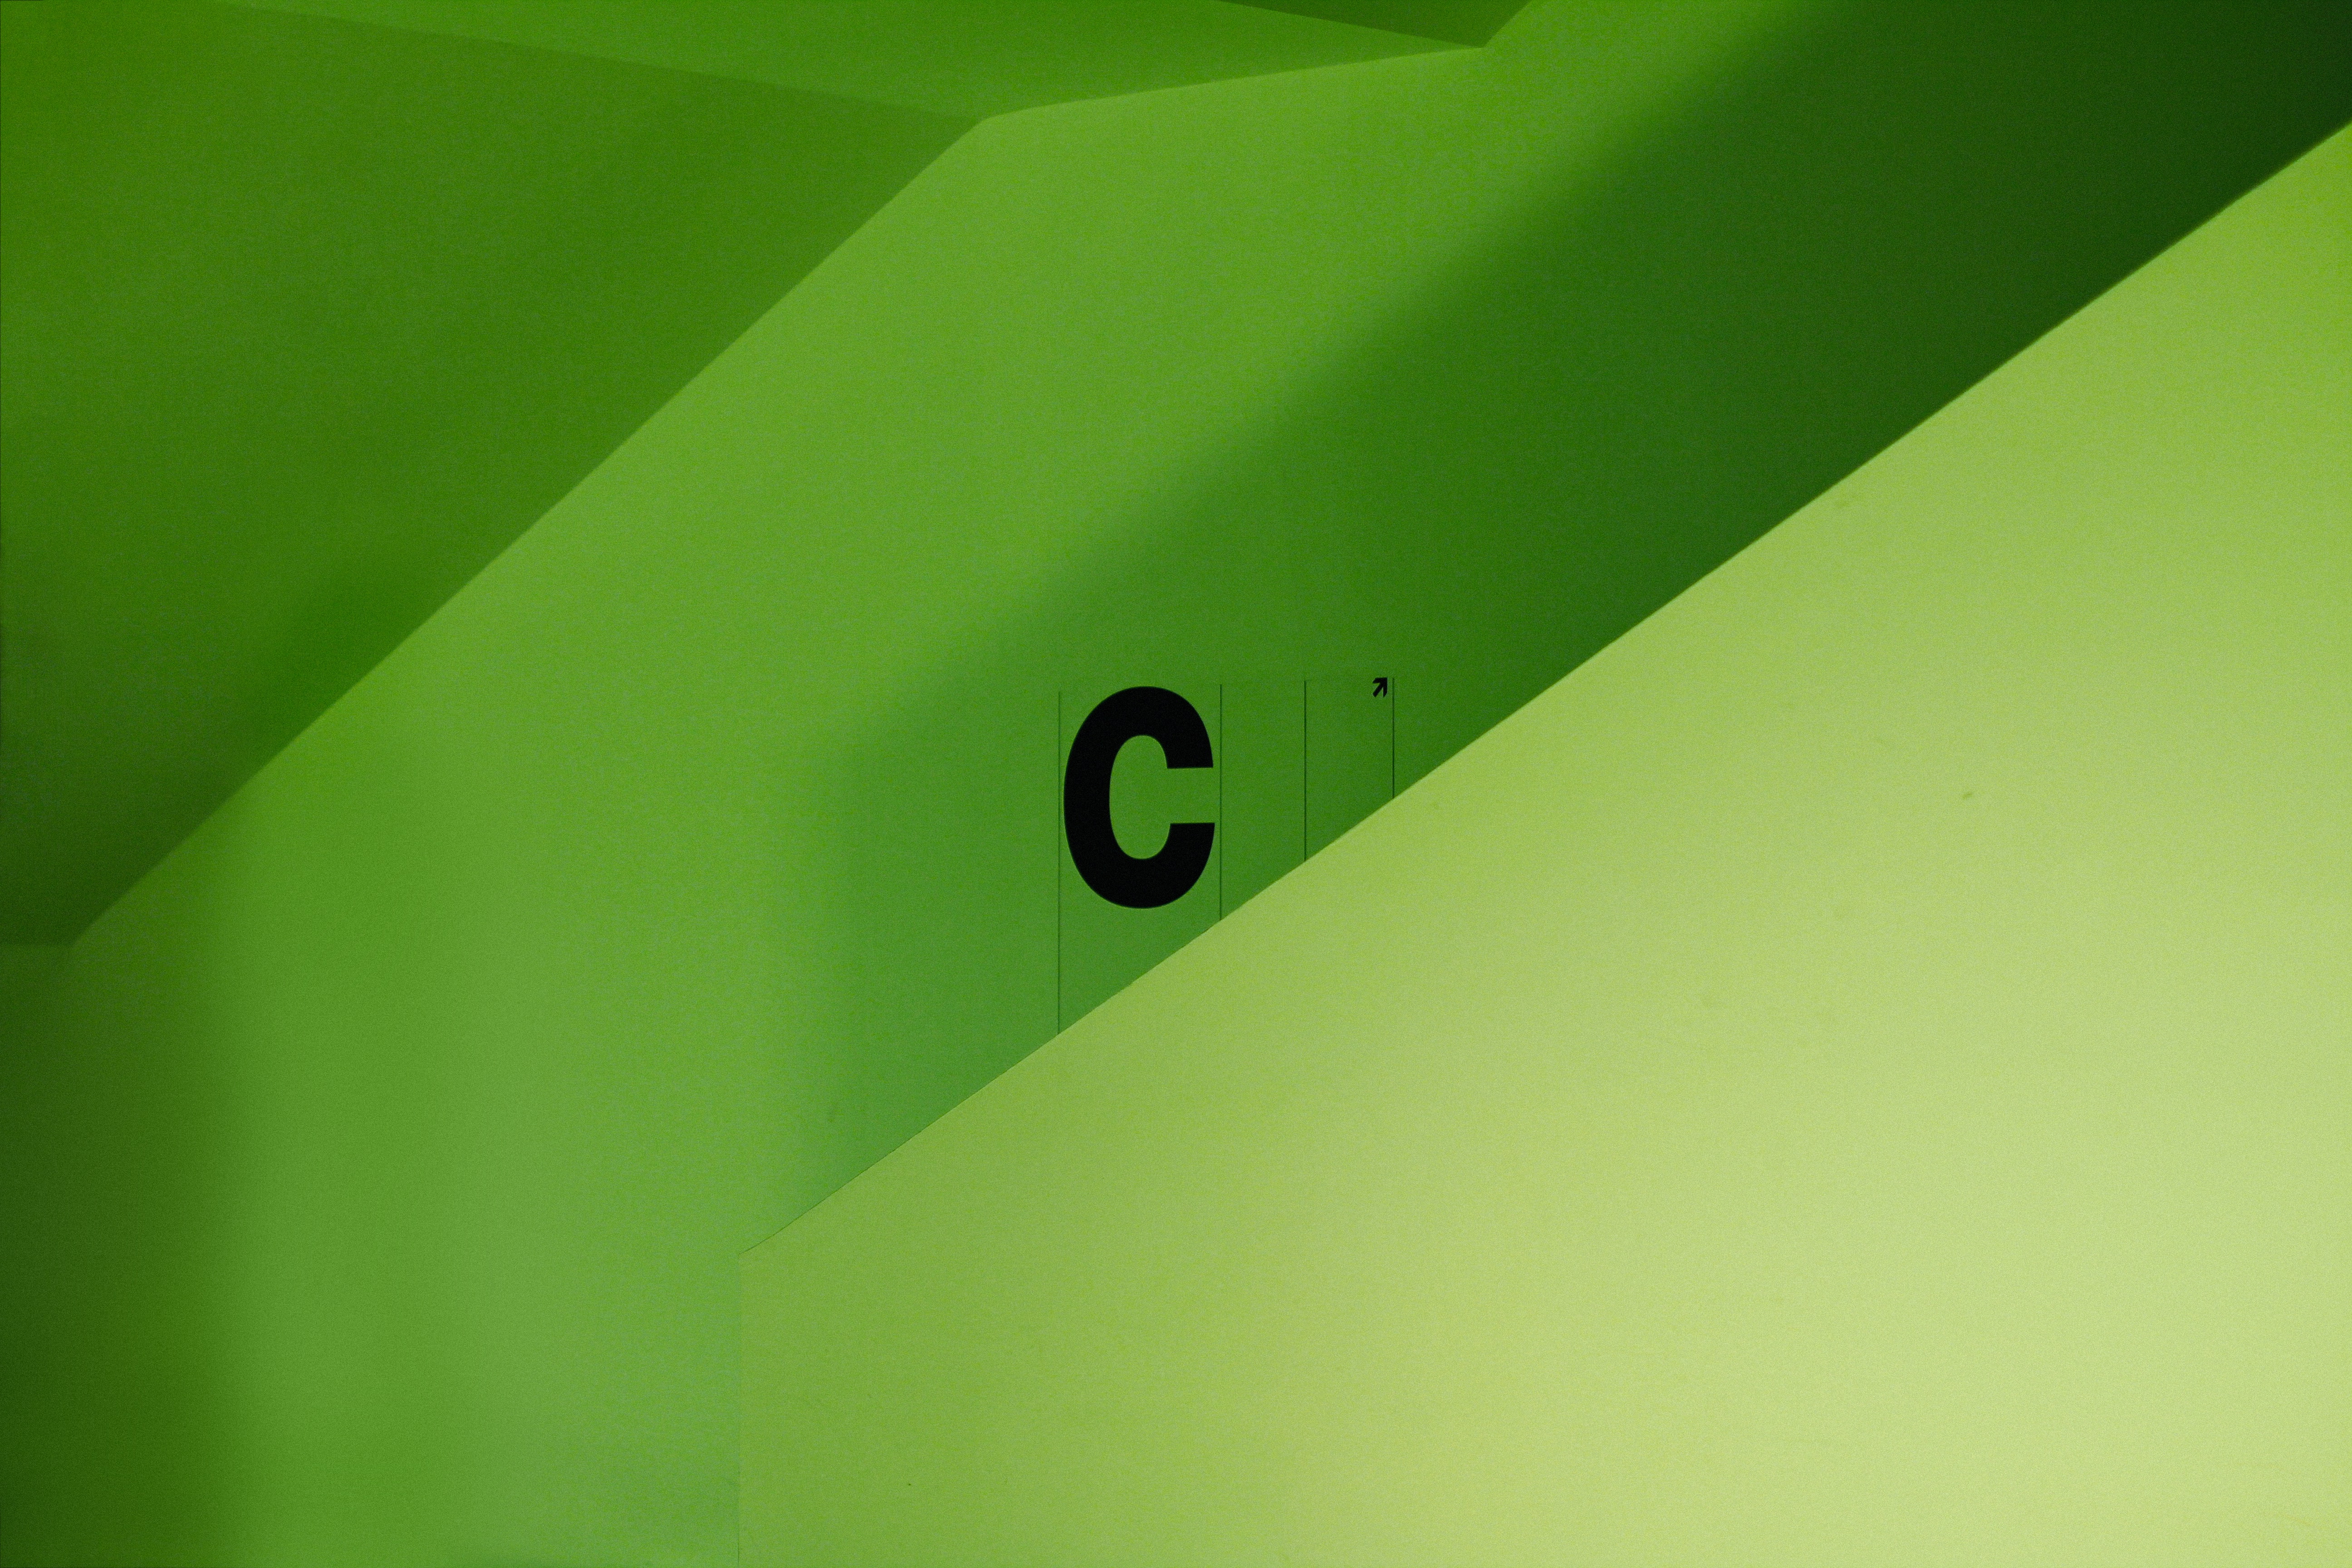 green painted wall